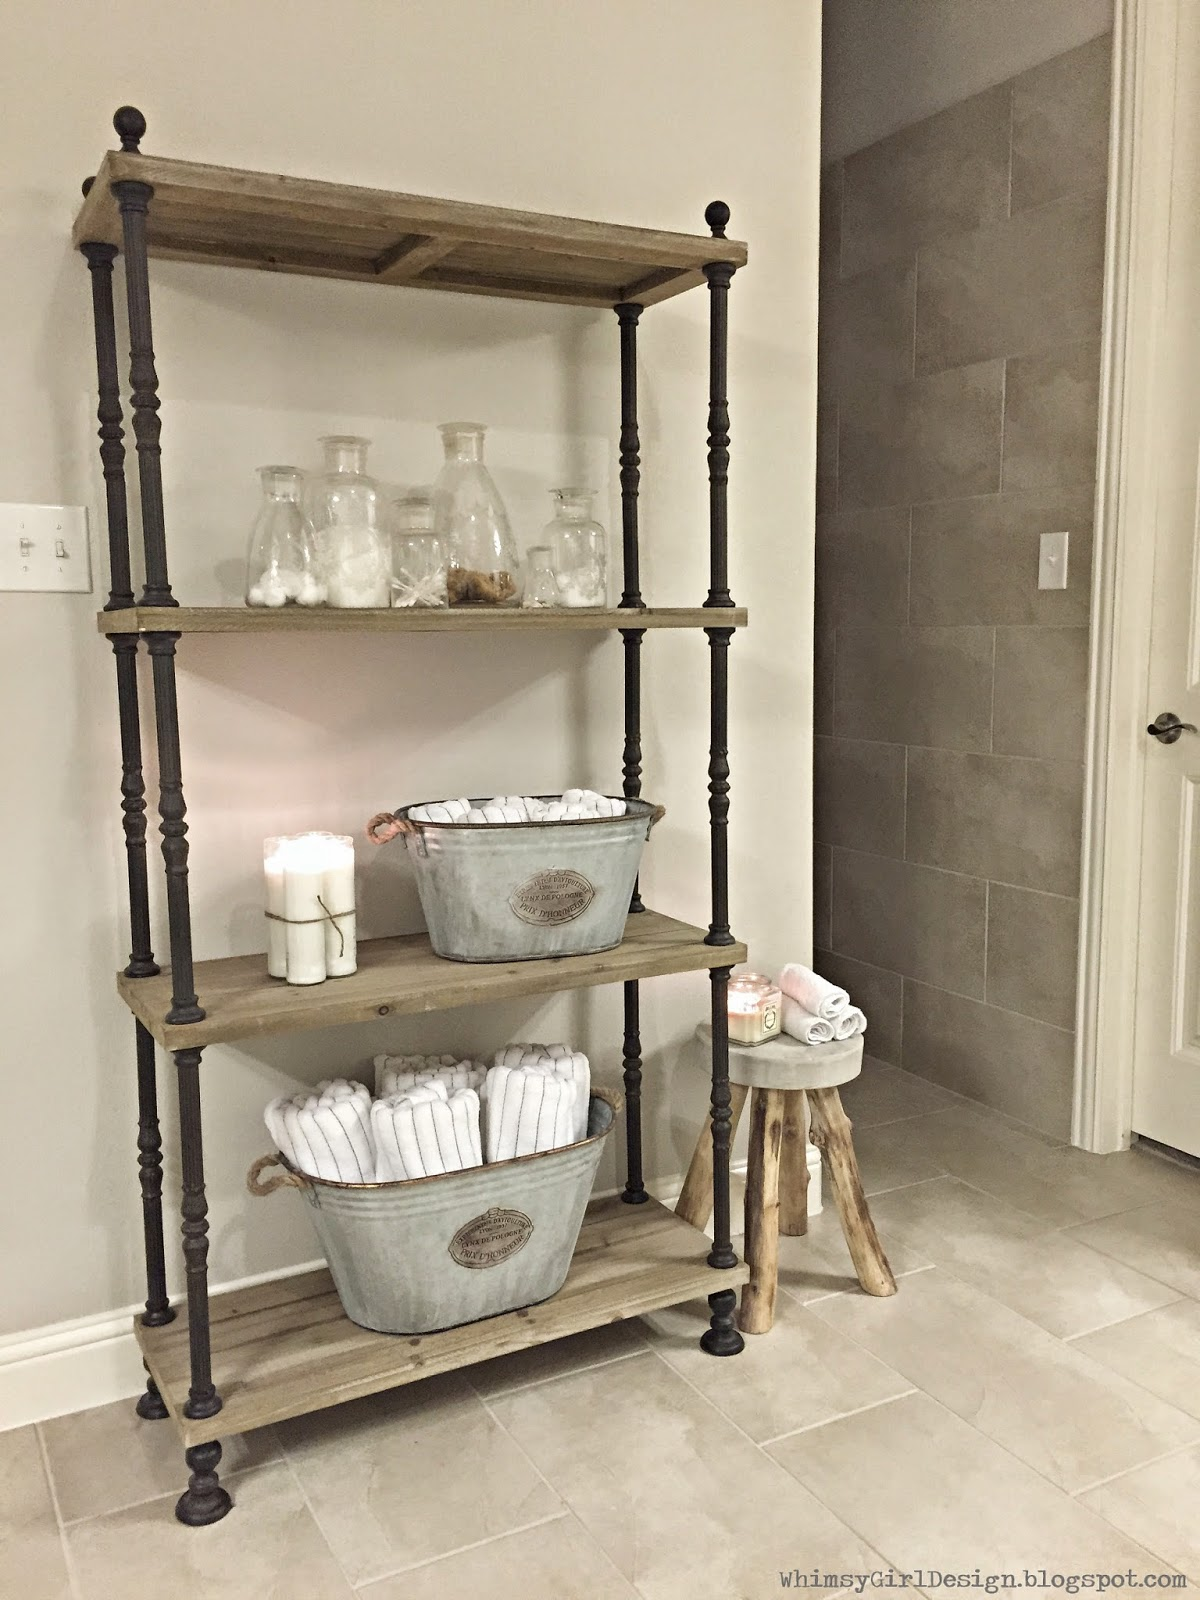 whimsy girl: Our Home: {Master Bathroom}